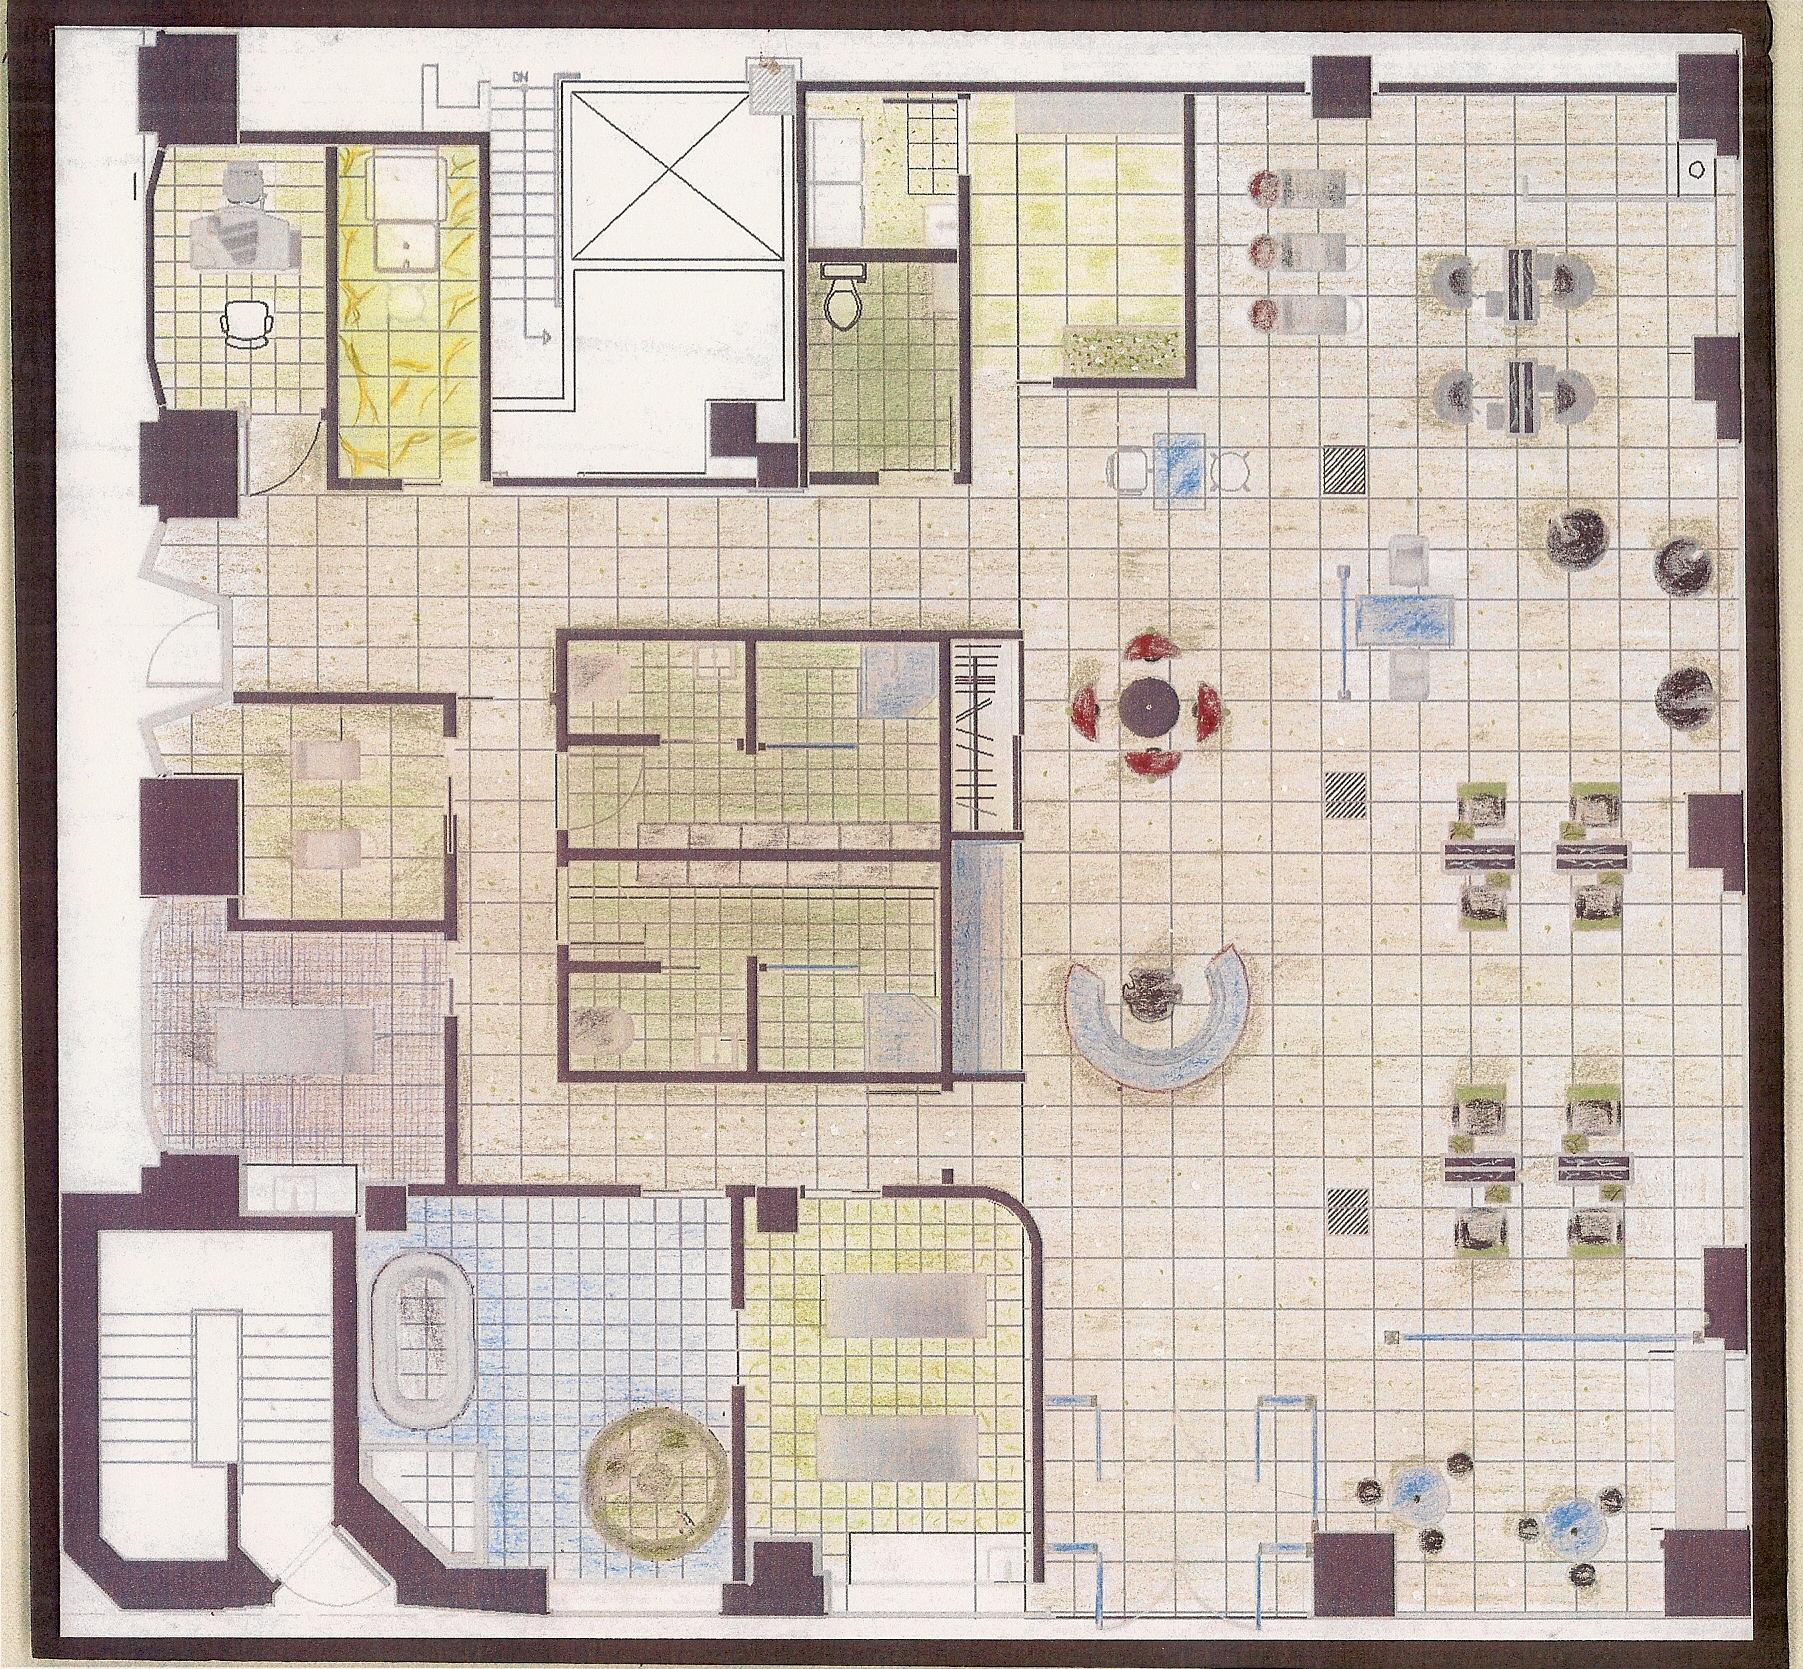 Salon And Spa Floor Plan Creator Free Joy Studio Design